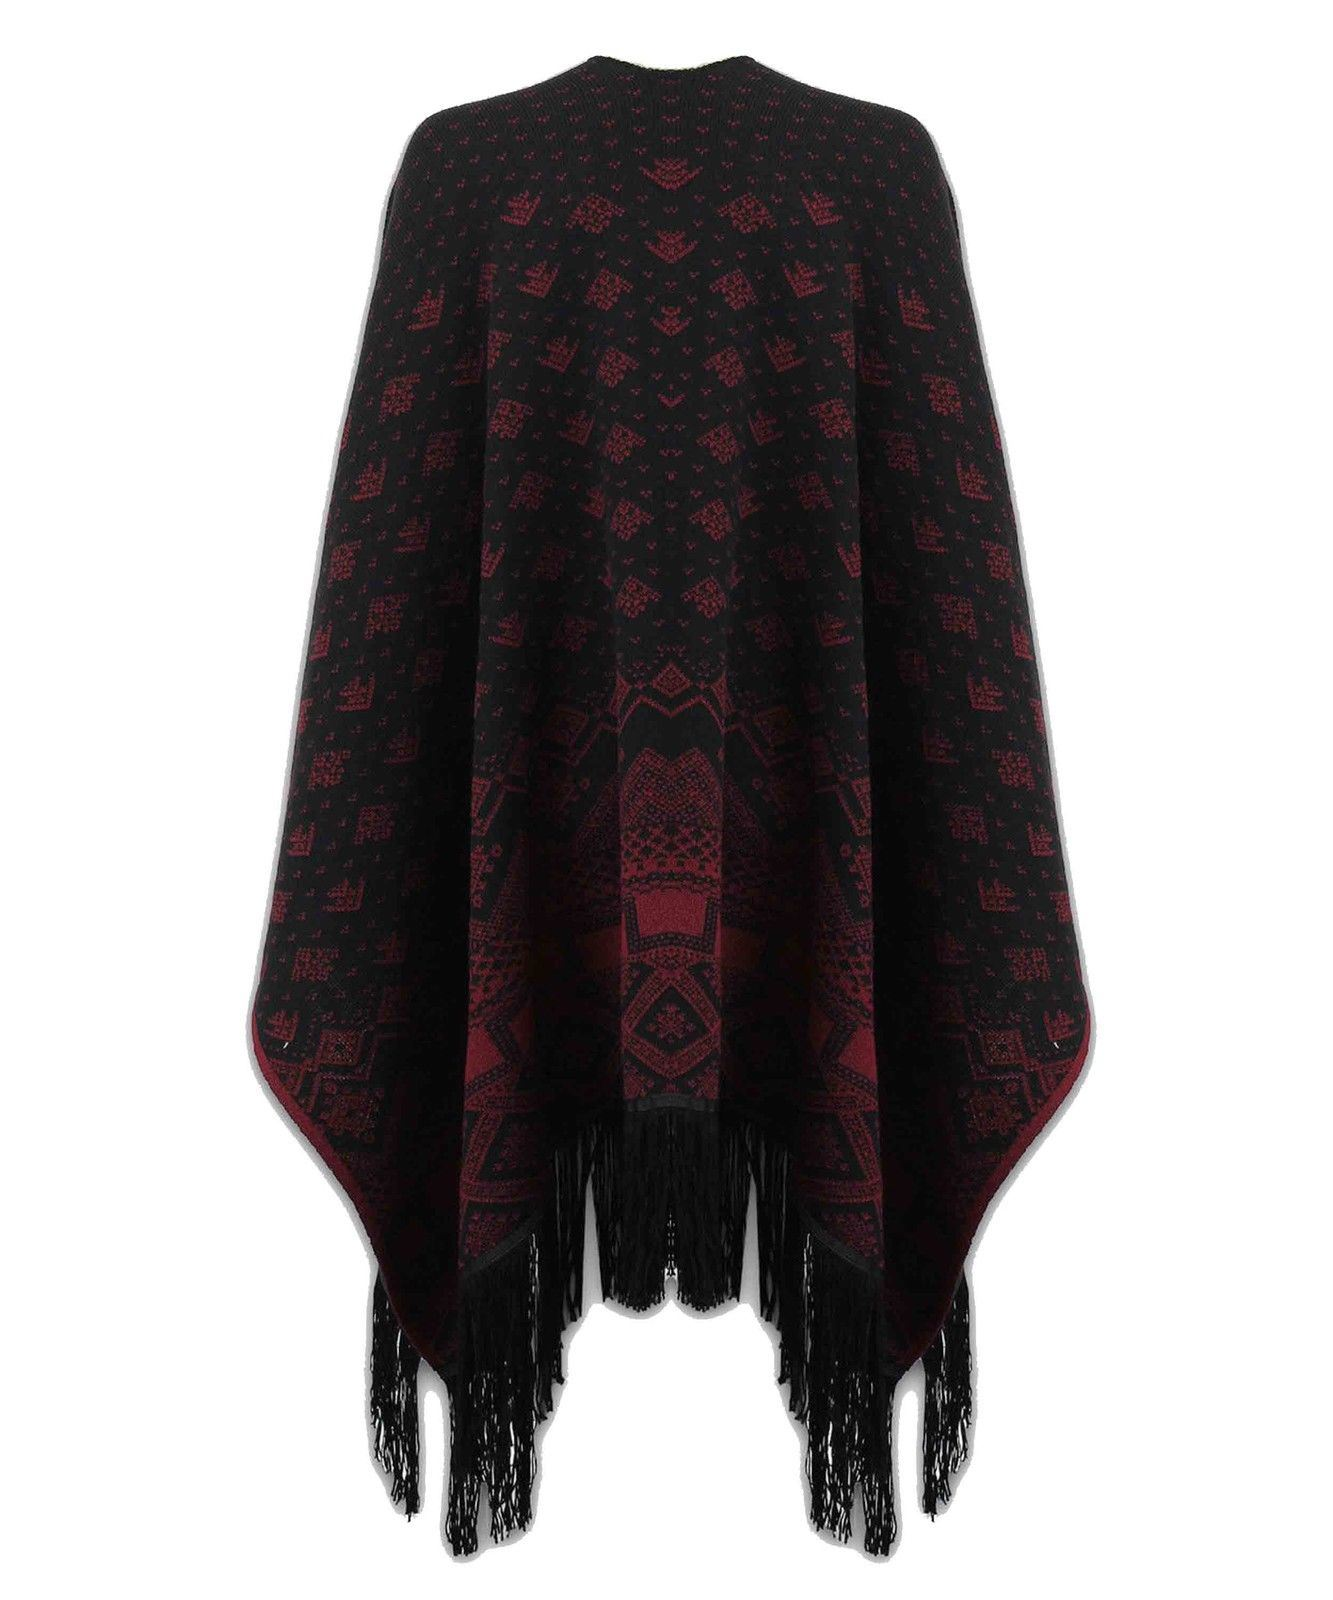 New Women Knitted Reversible Poncho Aztec Wrap Shawl ...